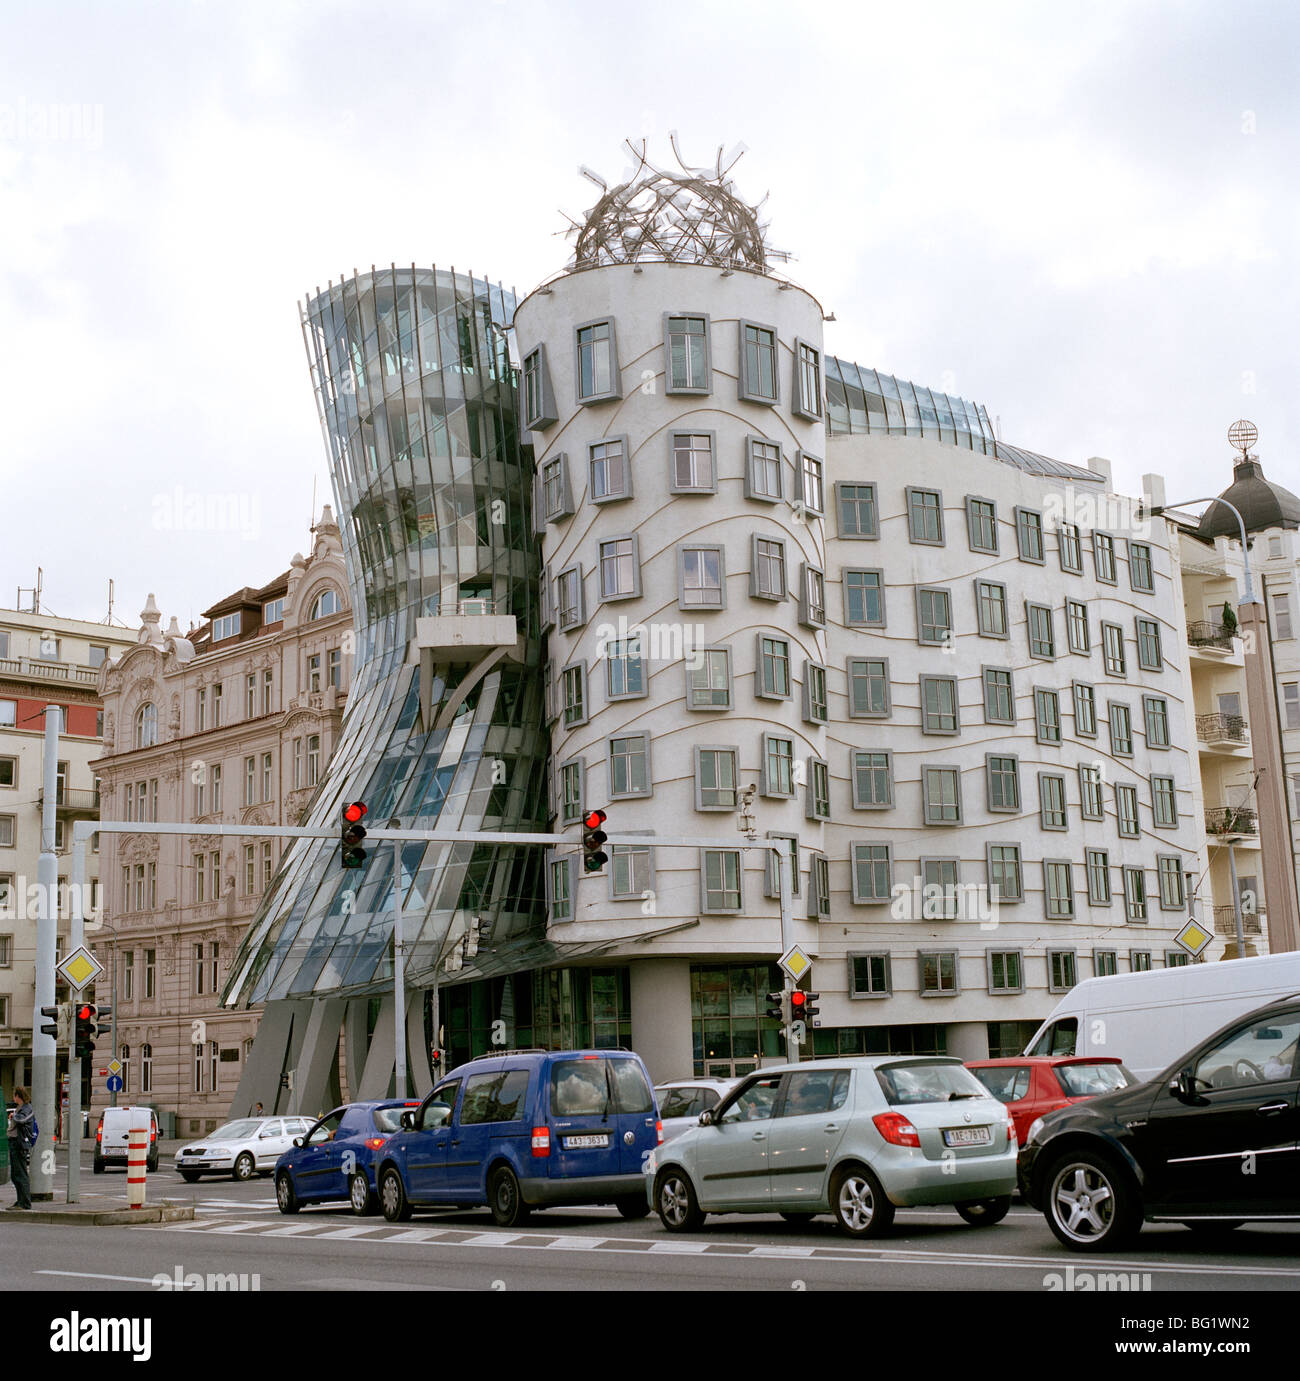 World Travel. The Frank Gehry Dancing House or Fred and Ginger Building in Nove Mesto in Prague in the Czech Republic - Stock Image